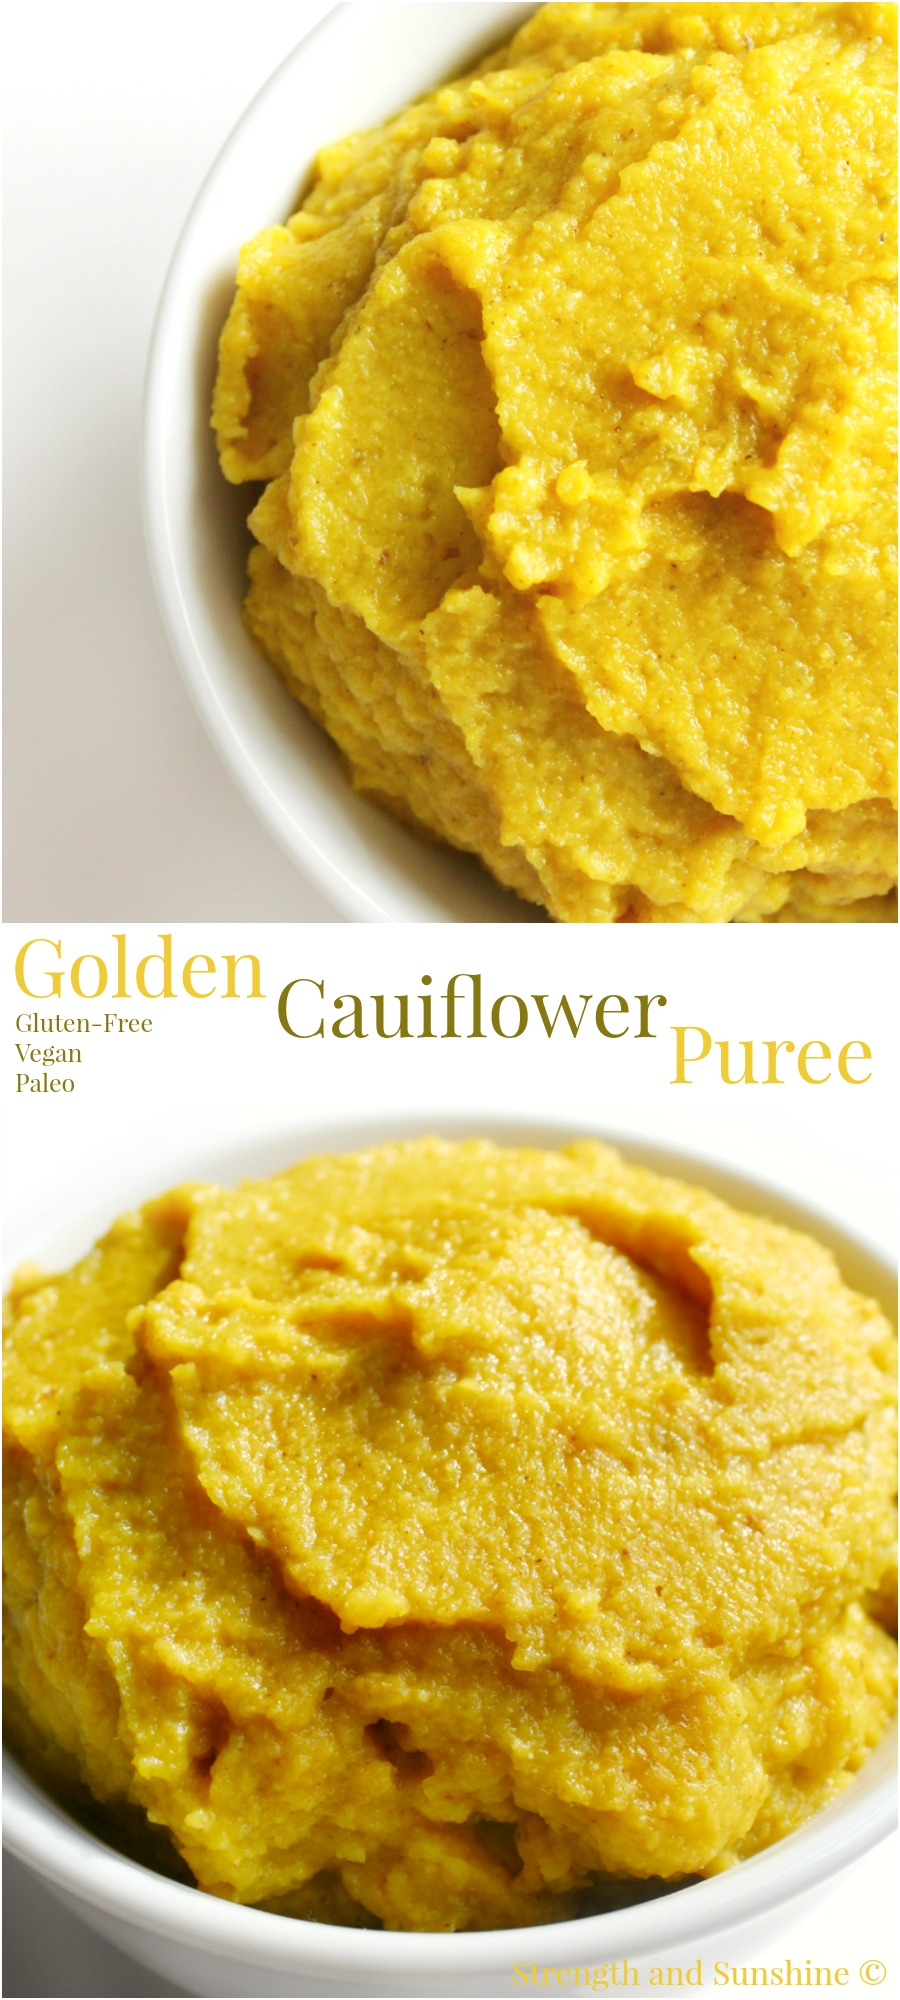 Golden Cauliflower Puree | Strength and Sunshine @RebeccaGF666 A simple golden cauliflower puree with golden beets, Indian spices, and coconut milk. A healing and nourishing side dish recipe for gluten-free, vegan, and paleo eaters alike.